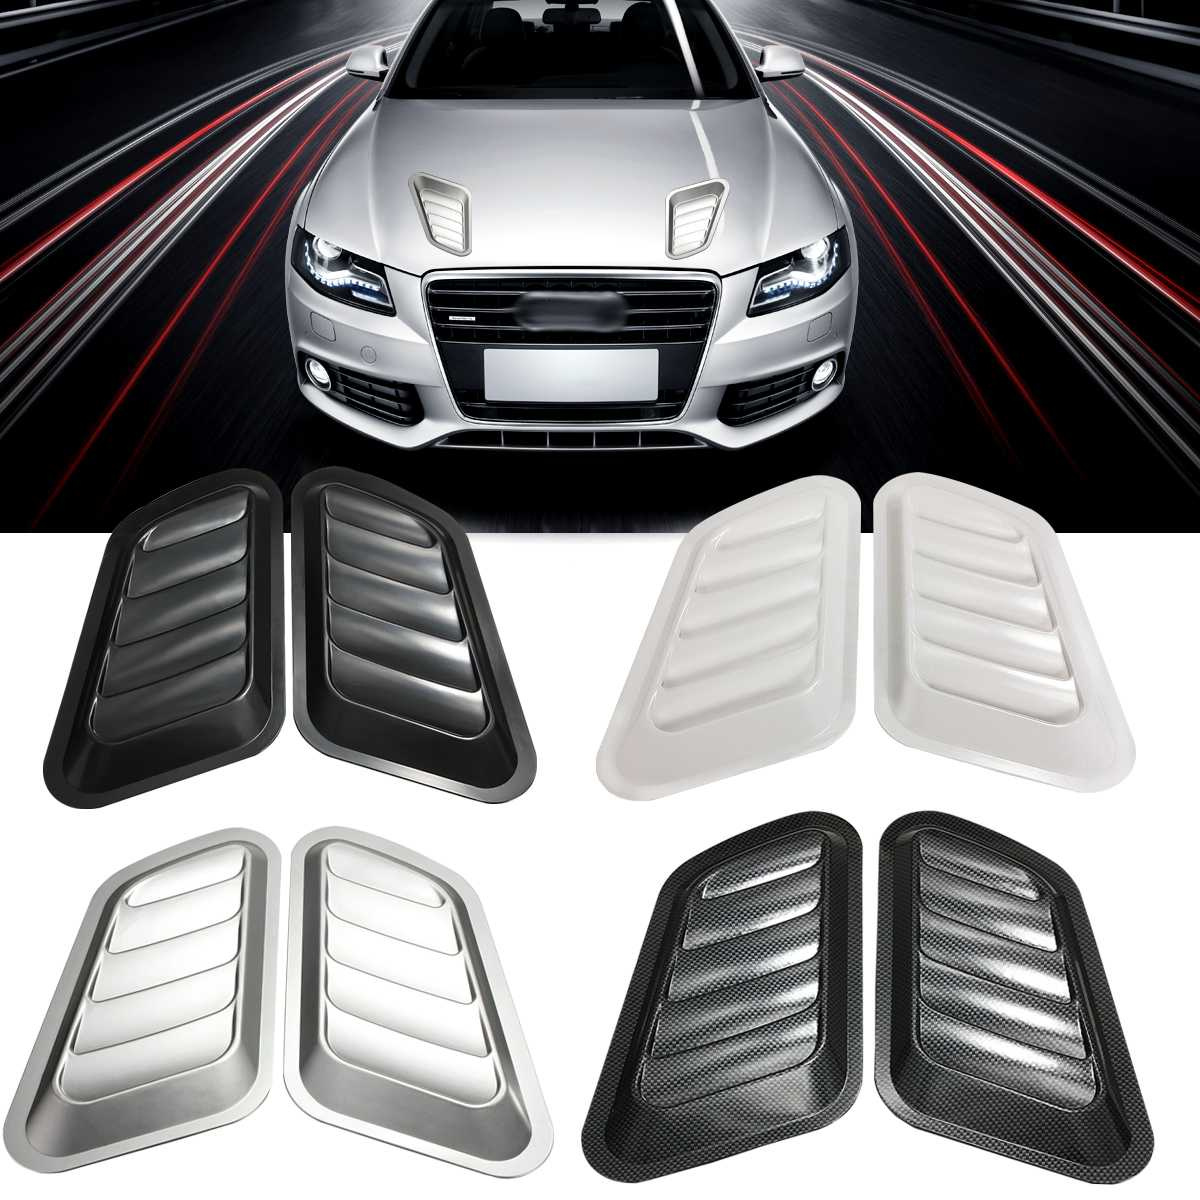 1Pair ABS Car Front Engine Cover Sticker Car Decorative Air Outlet Flow Intake Scoop Turbo Bonnet Vent Cover Hood